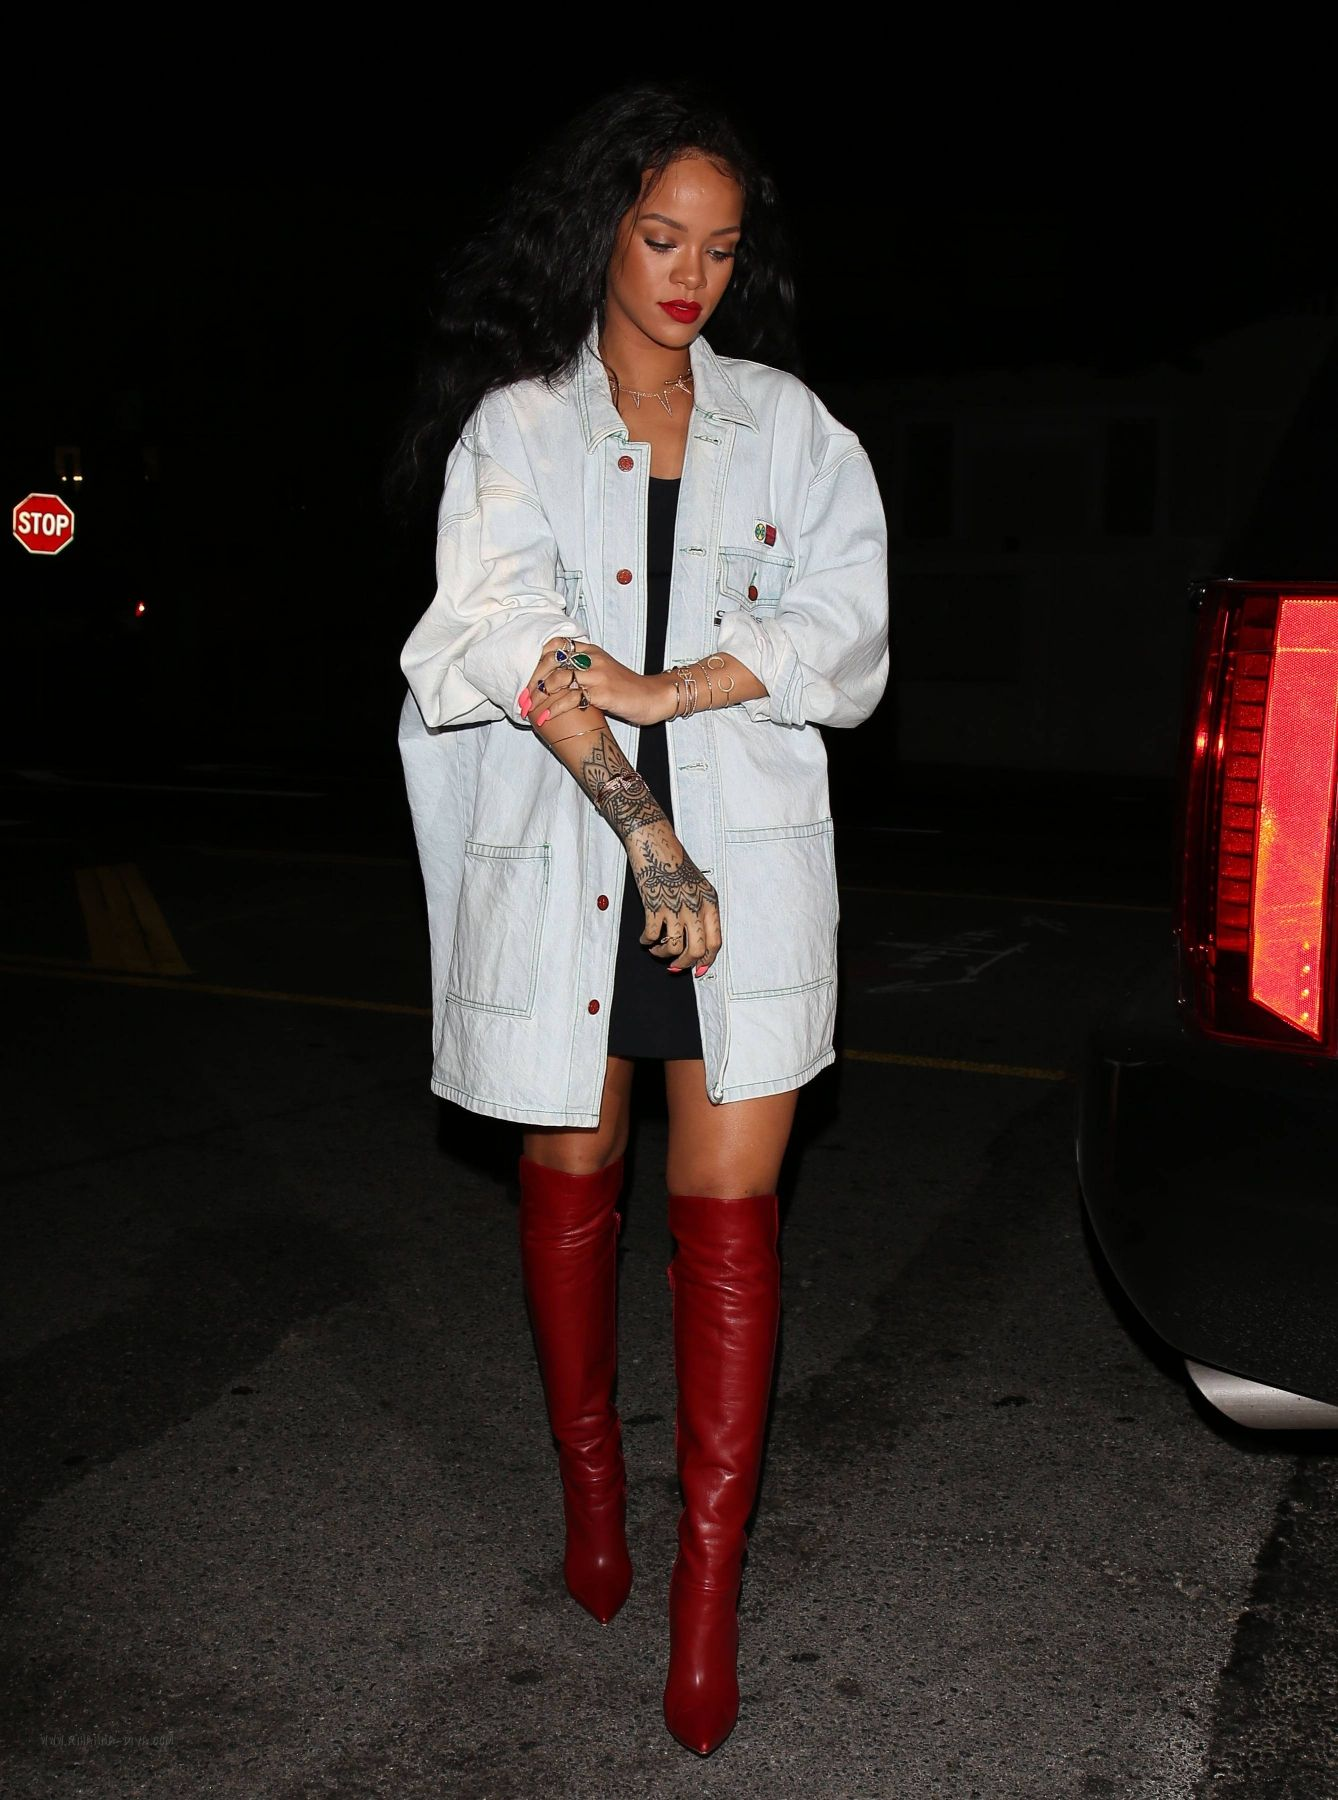 af6c1c024fd What s hotter than an oversized button down   red knee high boots!  x Riri  wearing it DUH!!! x love